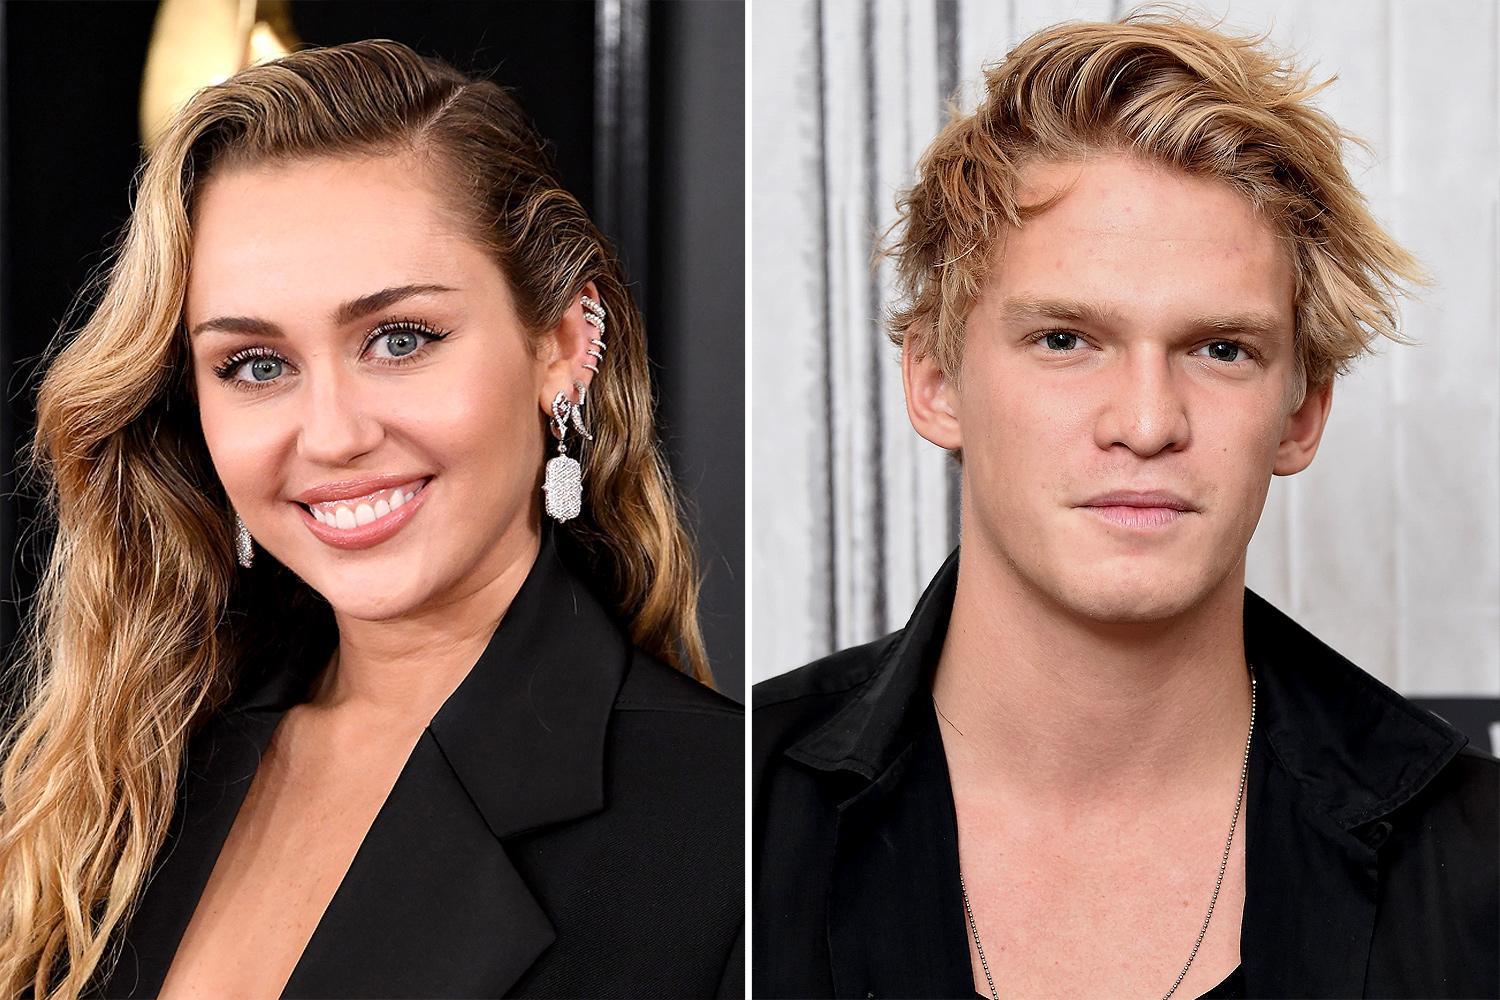 Miley Cyrus And Cody Simpson - Inside Their Thanksgiving Plans With Her Family!